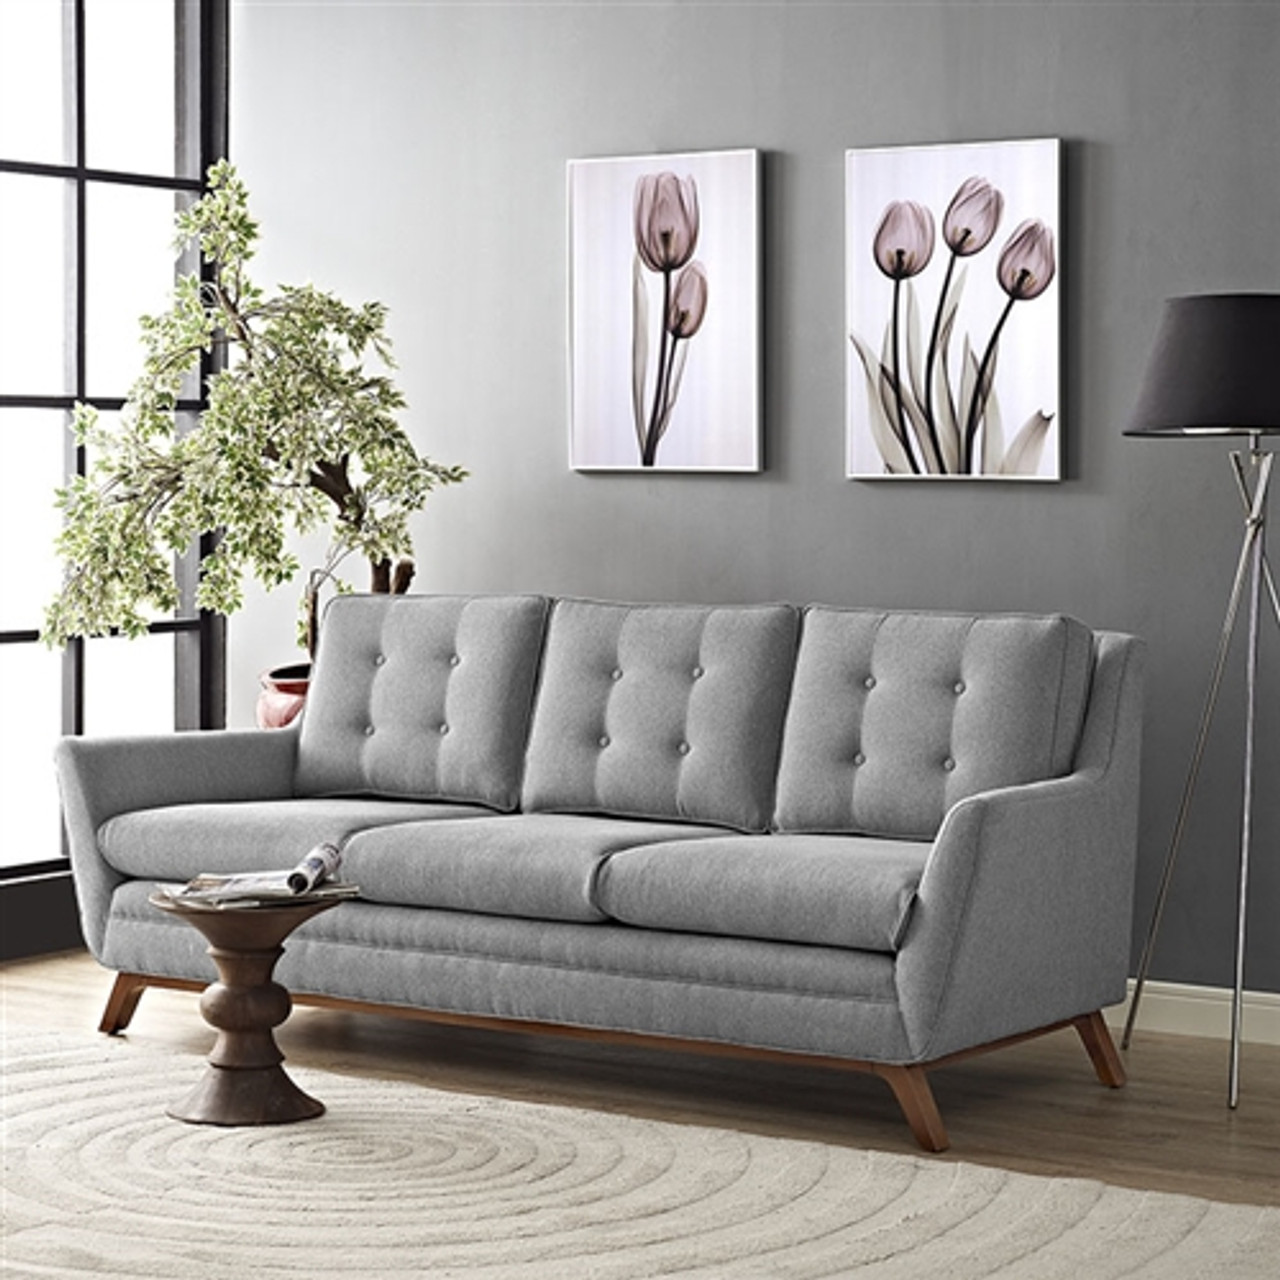 Modway Beguile Button Tufted Fabric Sofa Eei 1800